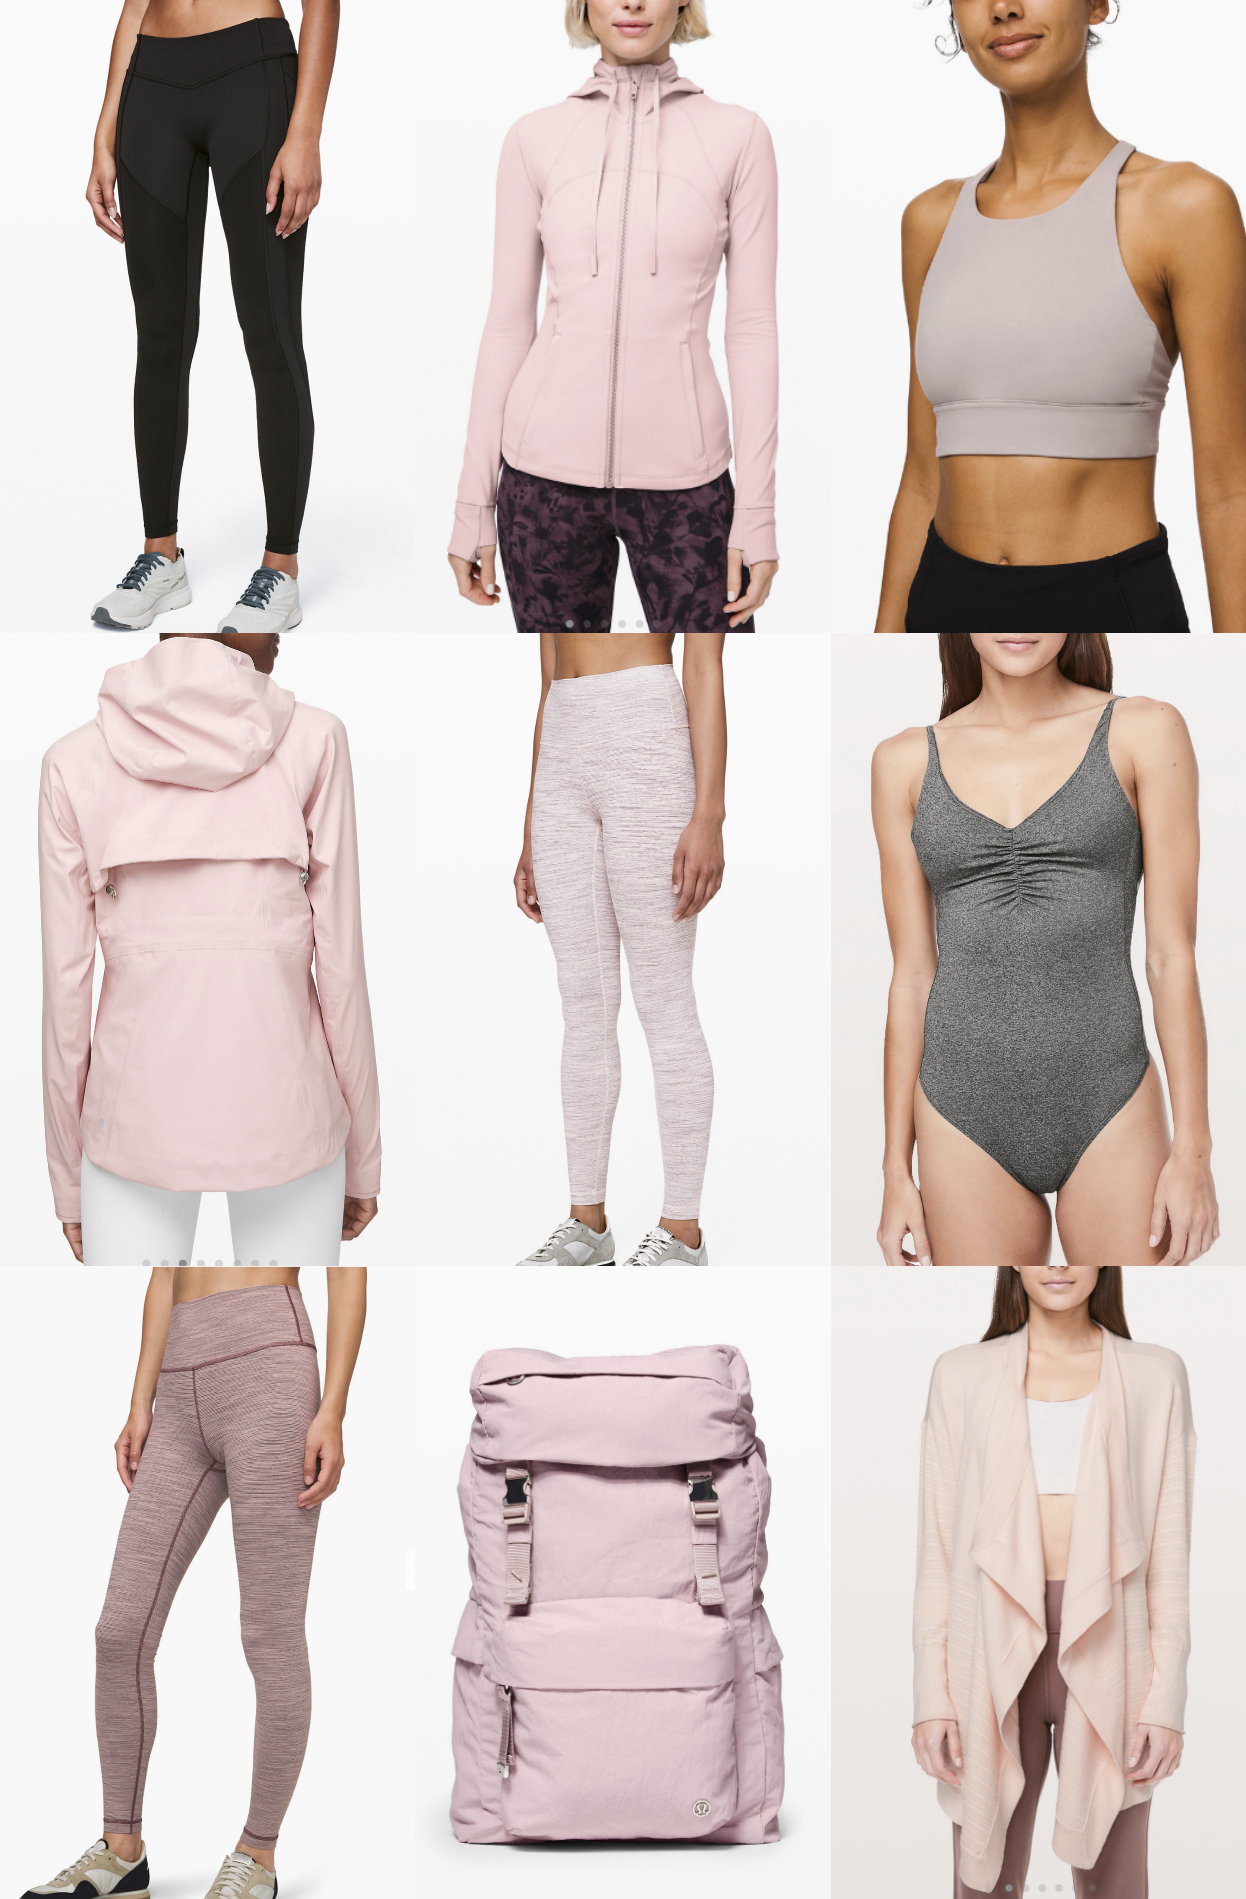 Lululemon | fitness sale | Mash Elle lifestyle blogger | sports clothing | athleisure | sports bra | gifts for her